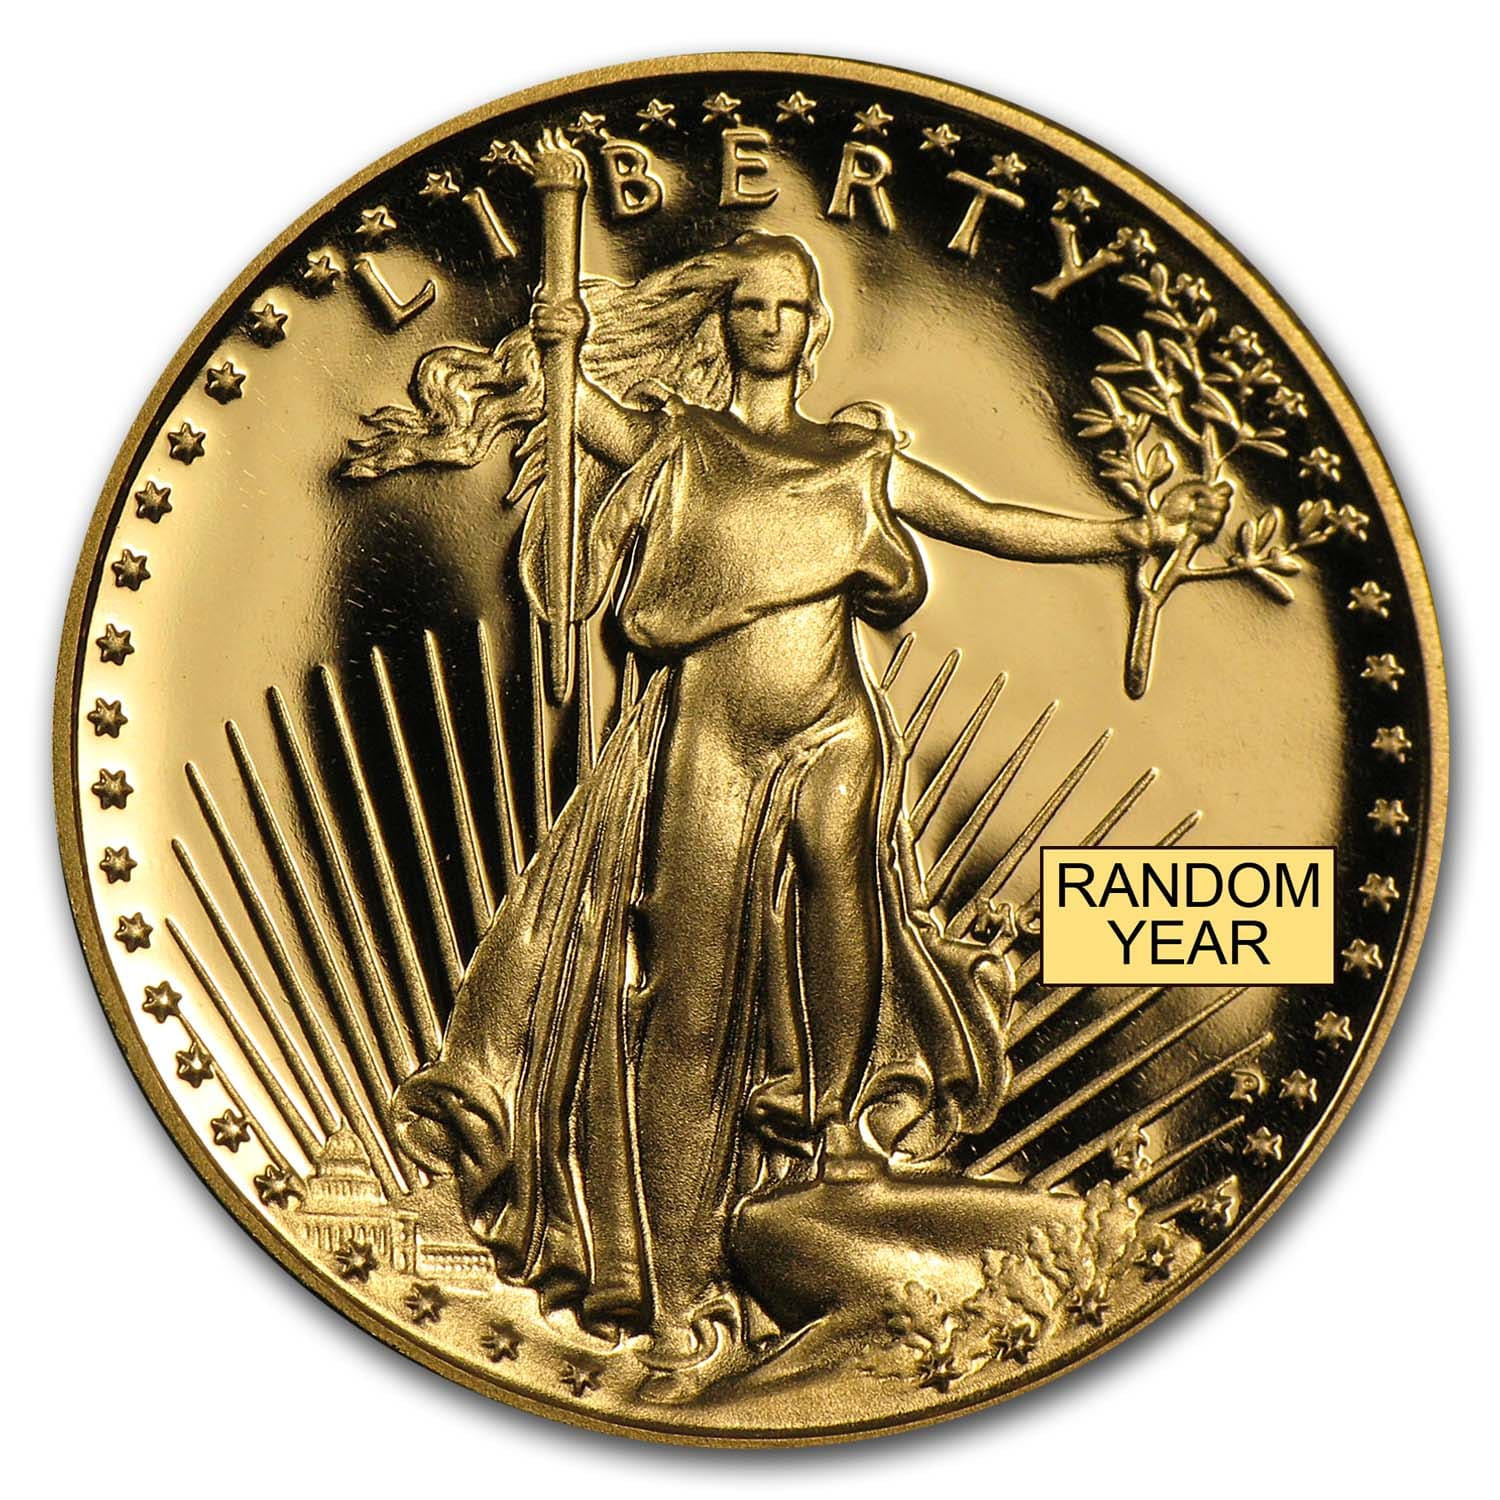 1/4 oz Proof Gold American Eagle (Random Year, w/Box & COA)